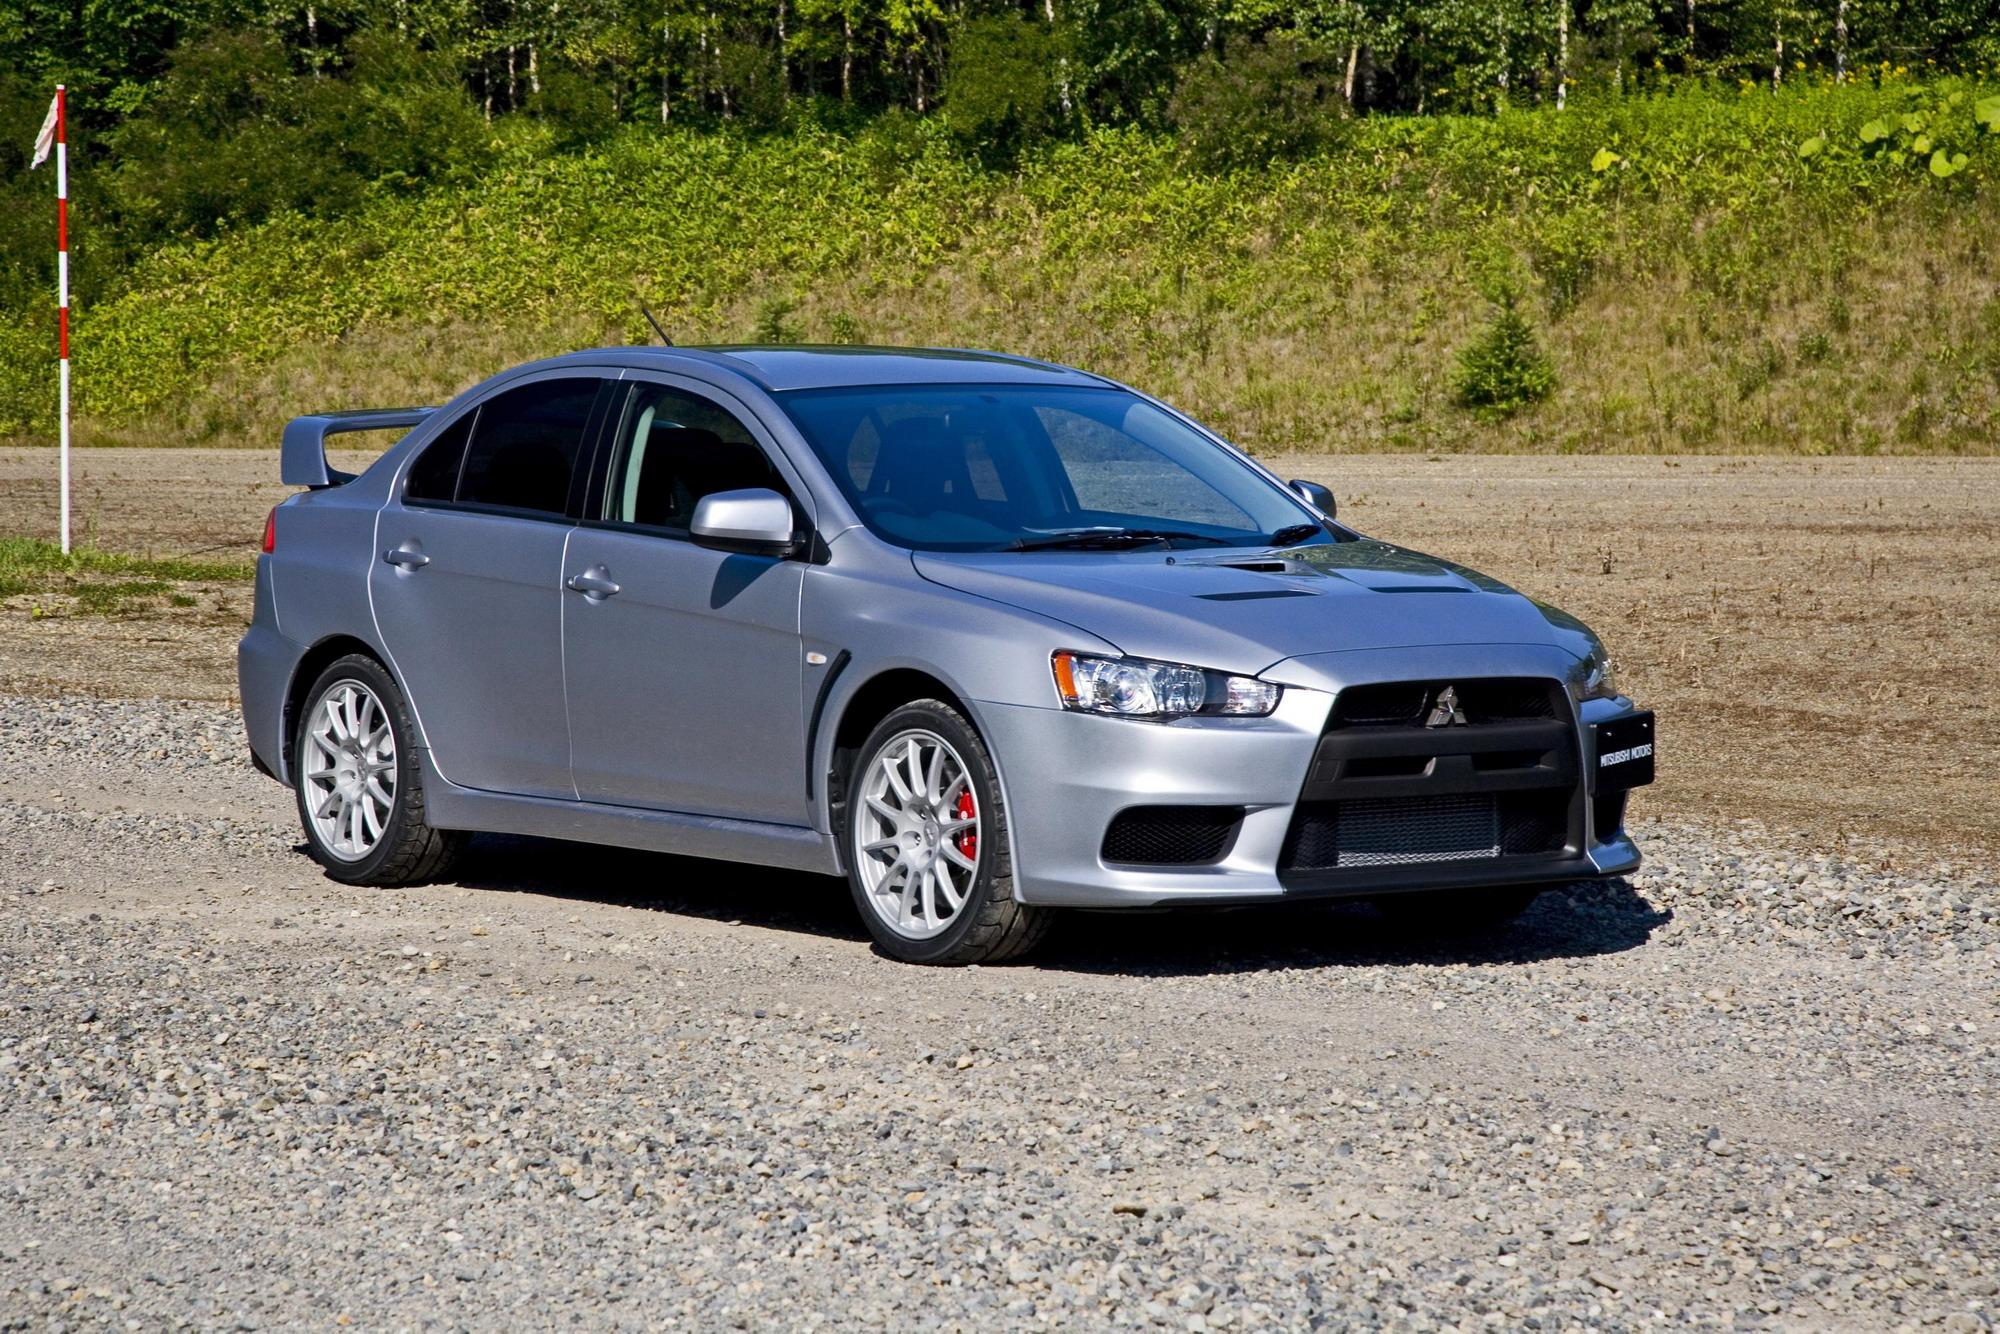 Awesome 2008 Mitsubishi Lancer Evolution | Top Speed. »